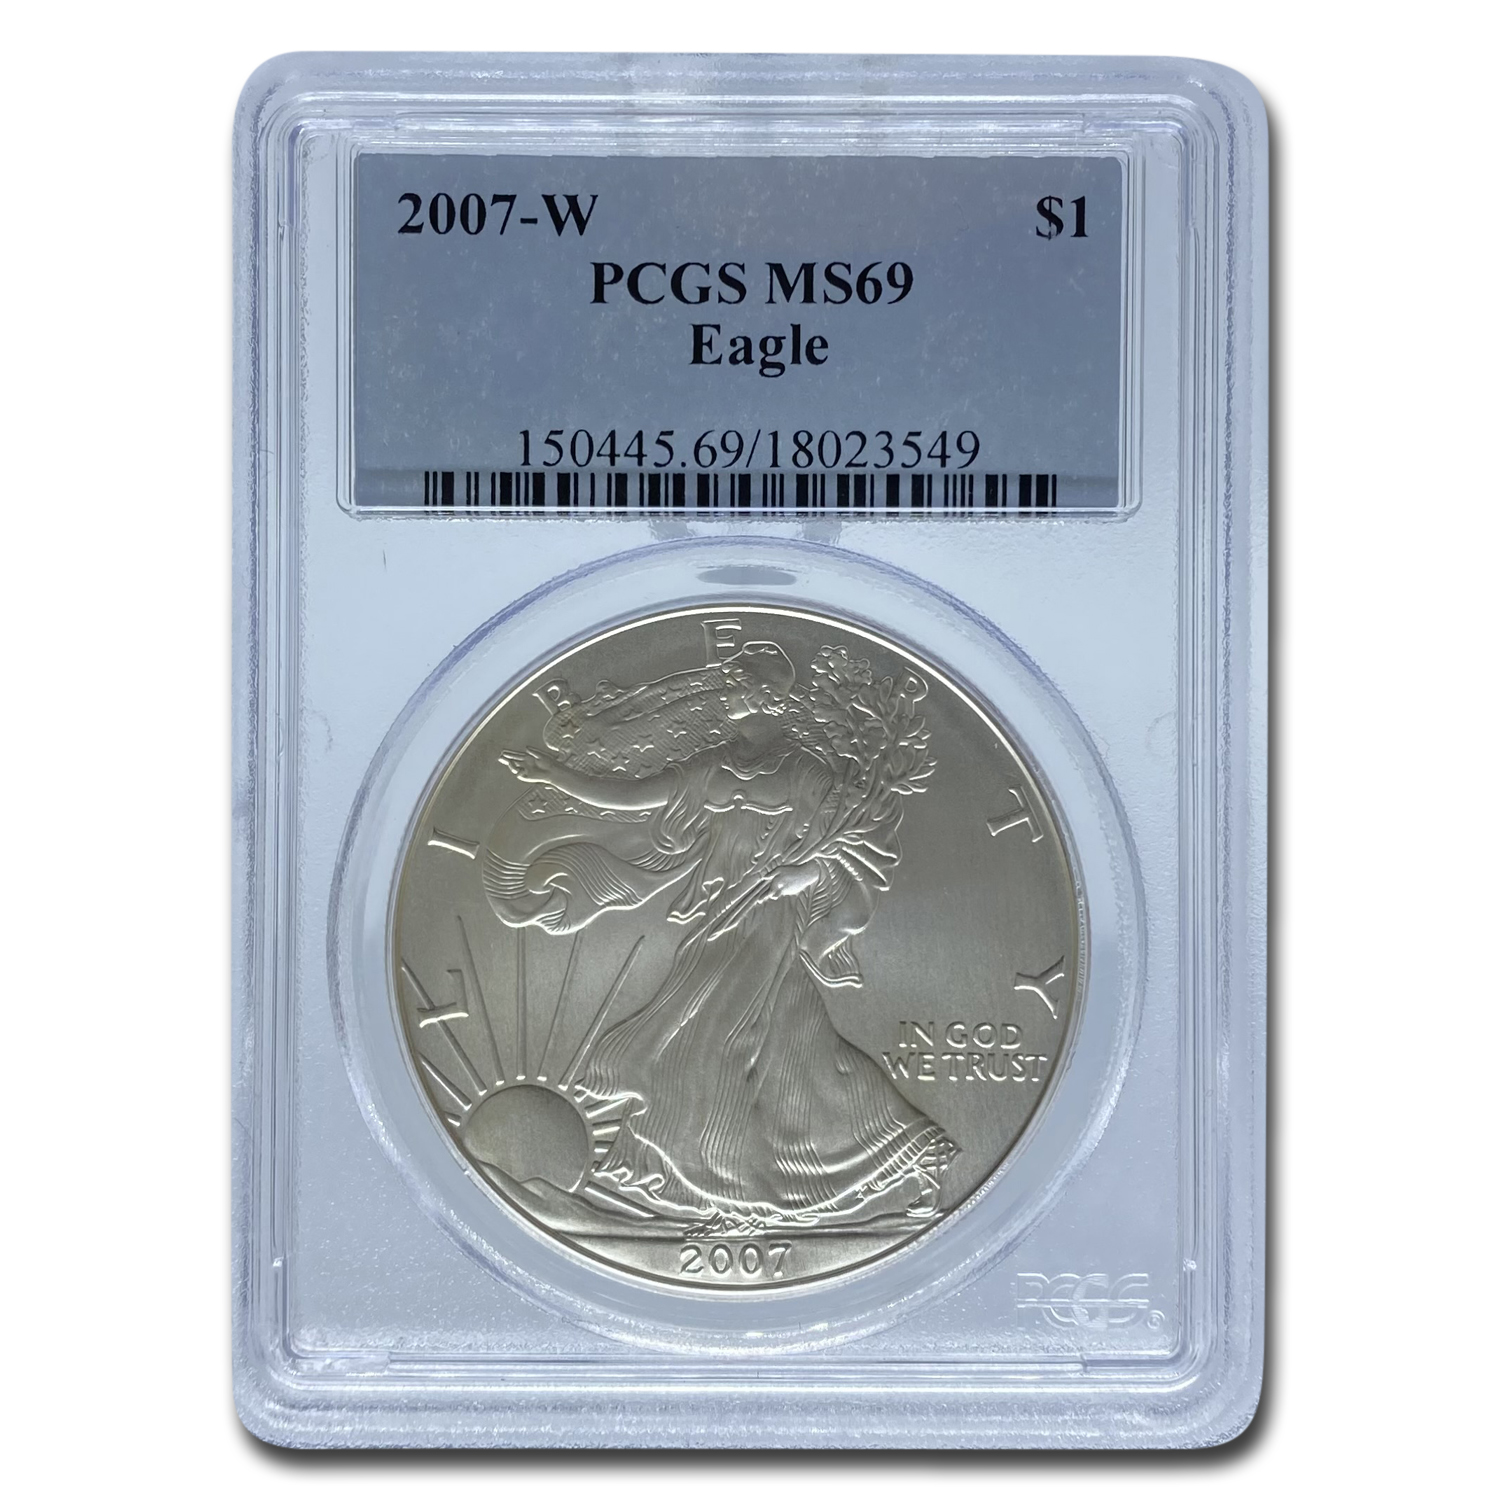 2007-W Burnished Silver American Eagle MS-69 PCGS